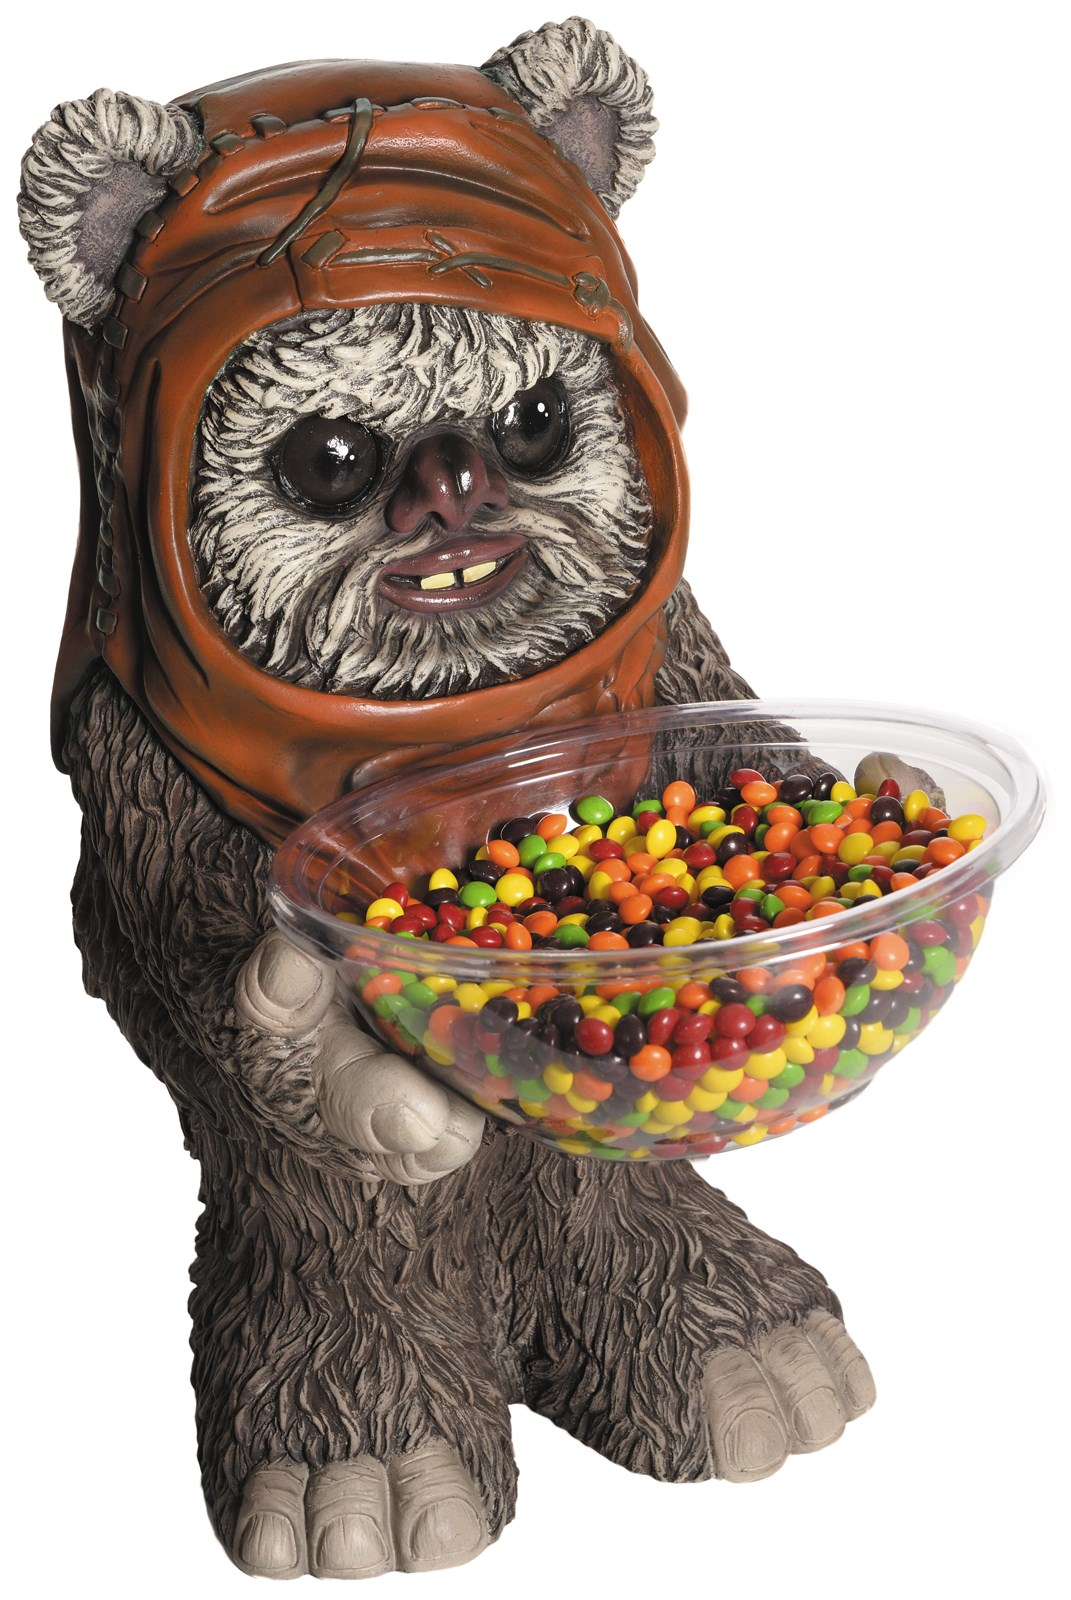 Star Wars Ewok Candy Bowl And Holder Buycostumes Com